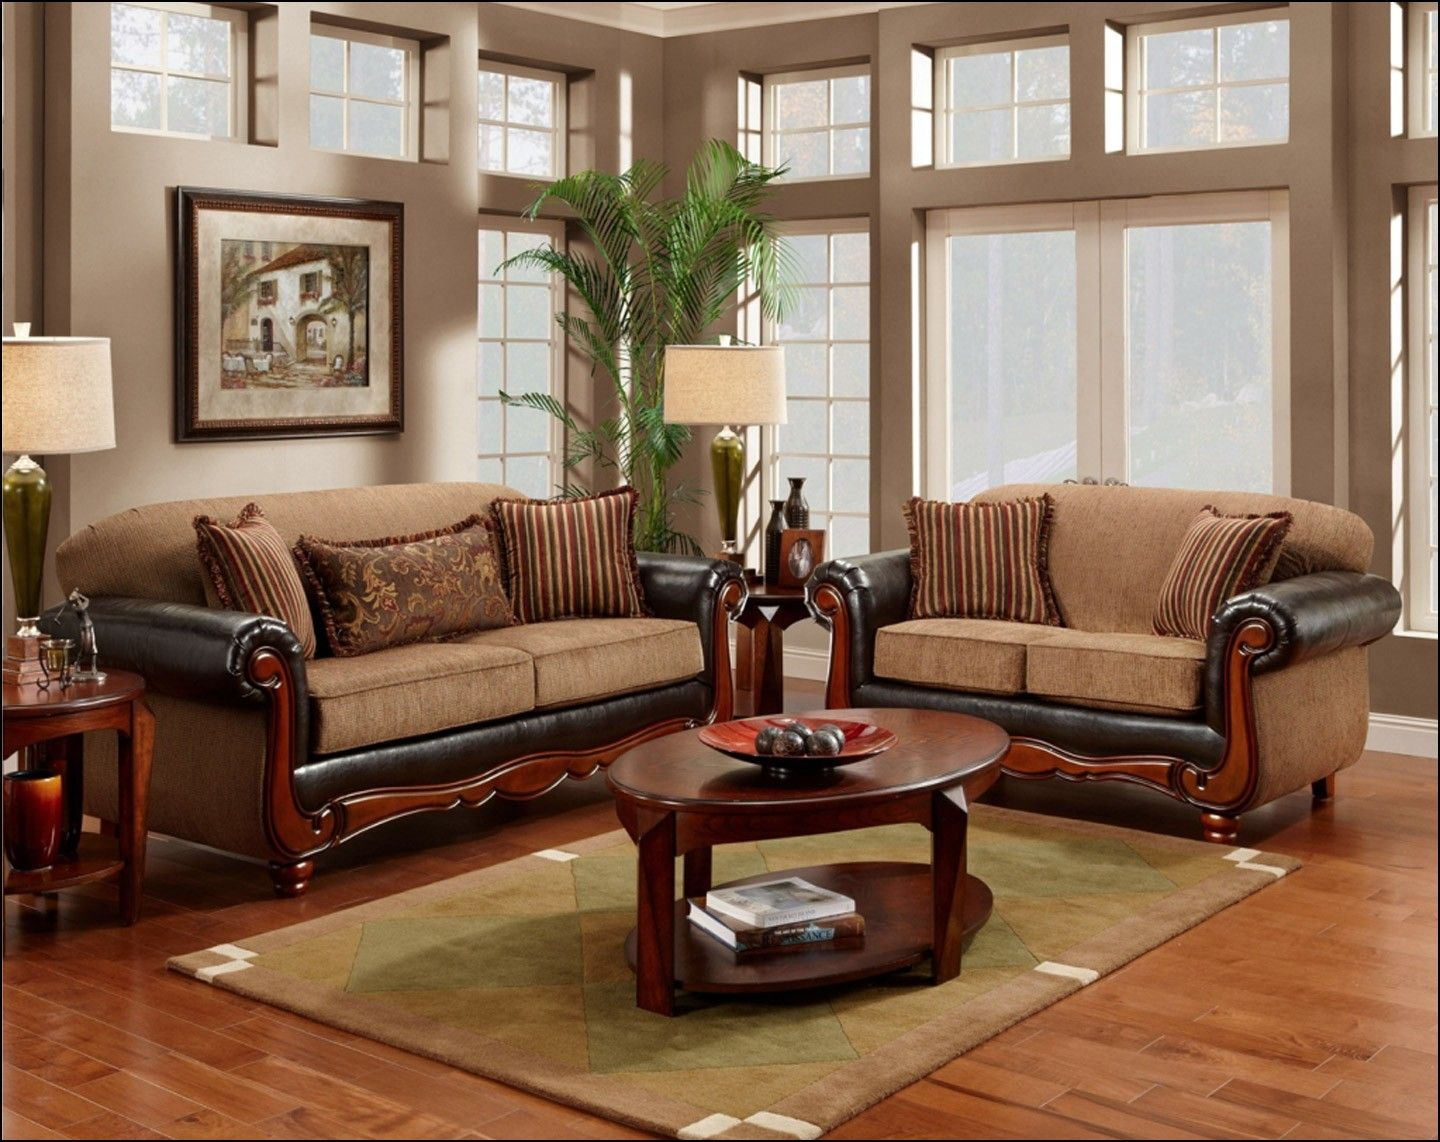 Wooden Sofa Set Designs For Small Living Room  Couch & Sofa Custom Sofa Set Designs For Small Living Room Inspiration